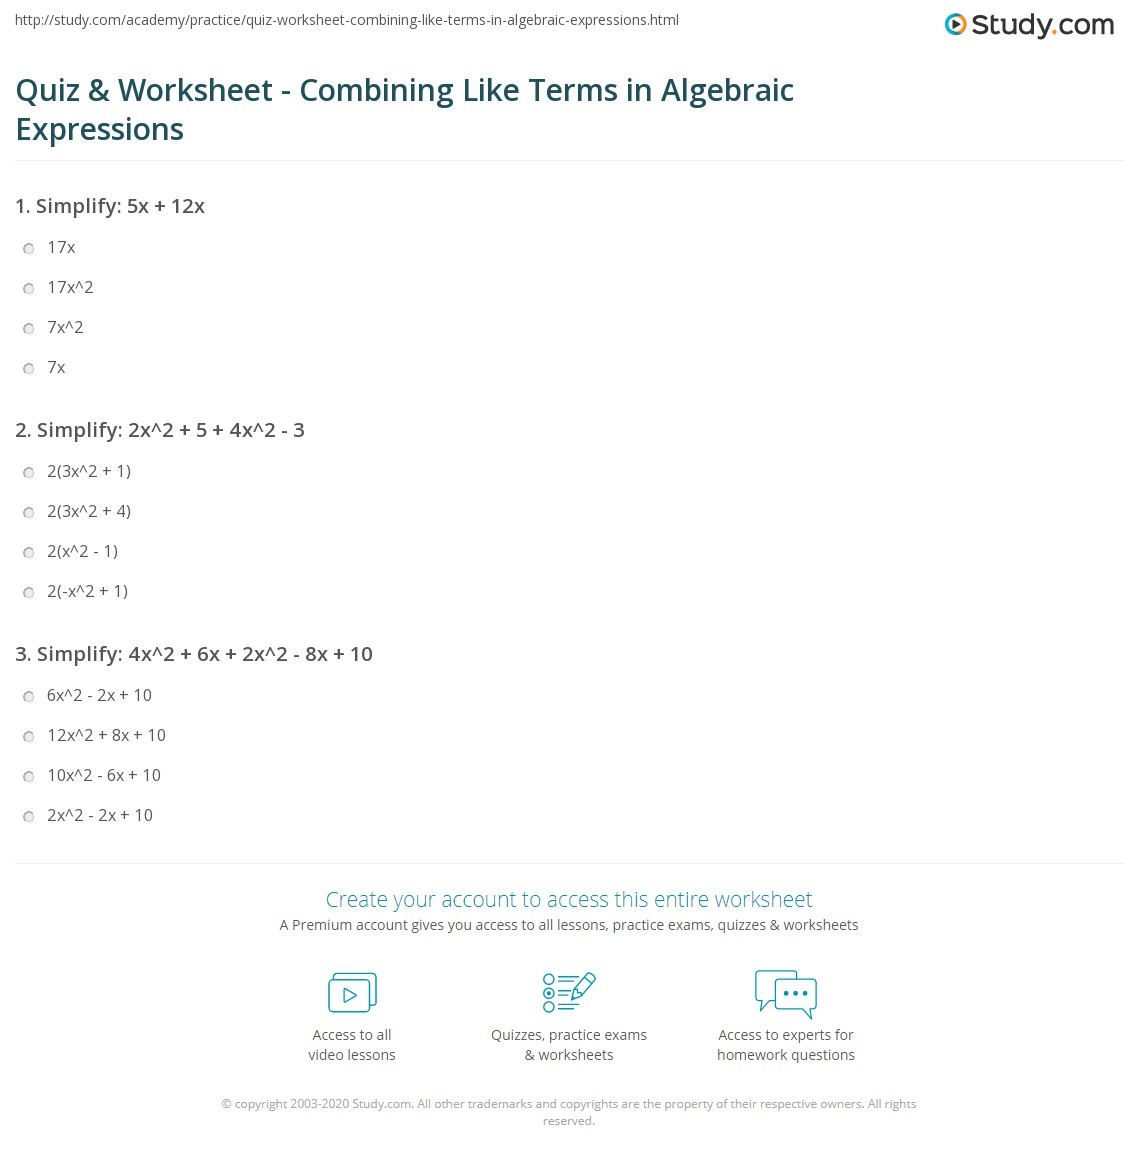 ... Worksheet - Combining Like Terms in Algebraic Expressions | Study.com